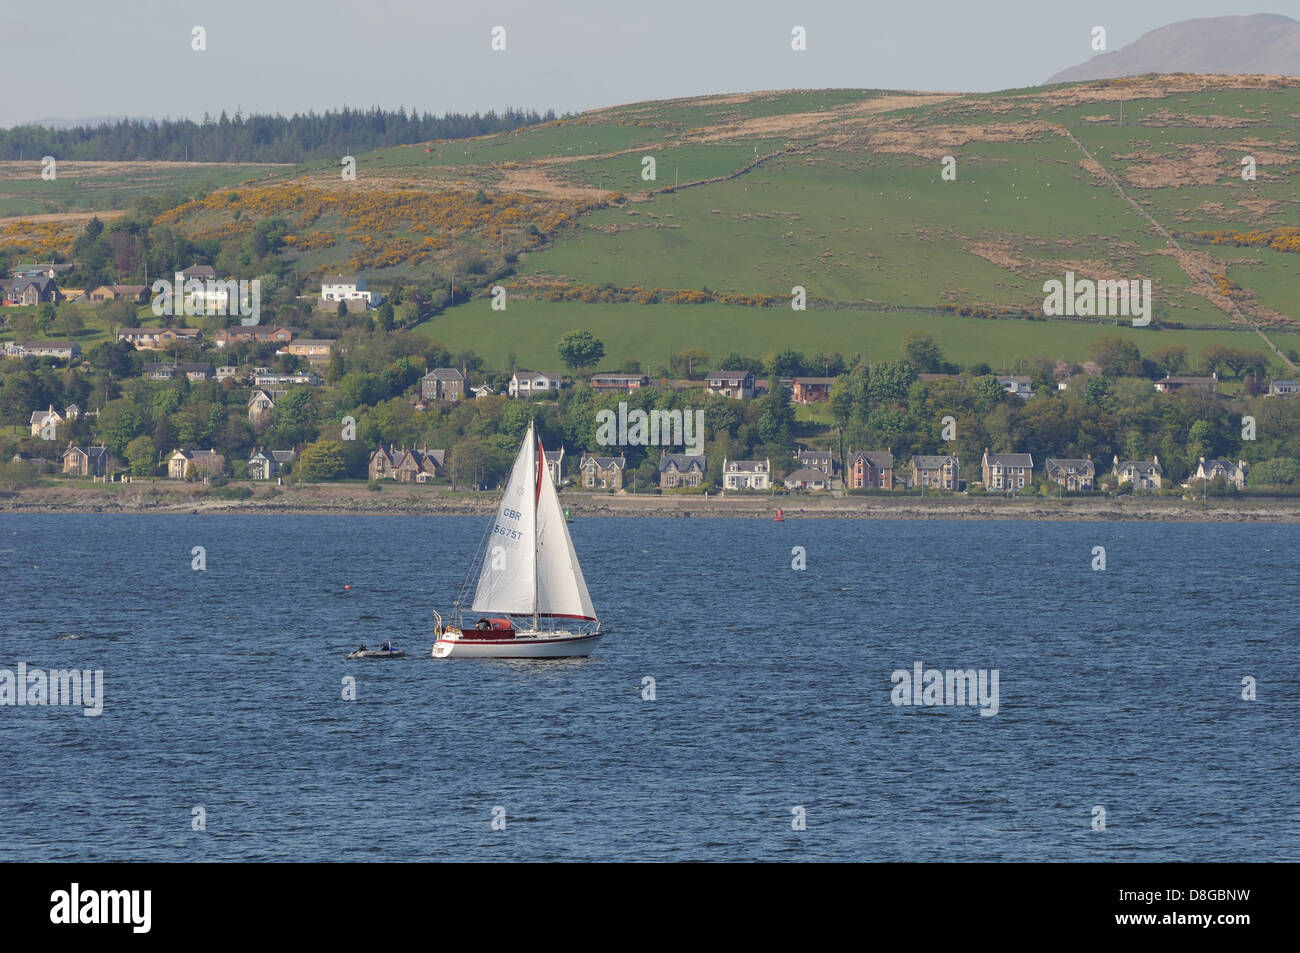 Sailing yacht on the River Clyde near Gourock, Scotland, UK Stock Photo